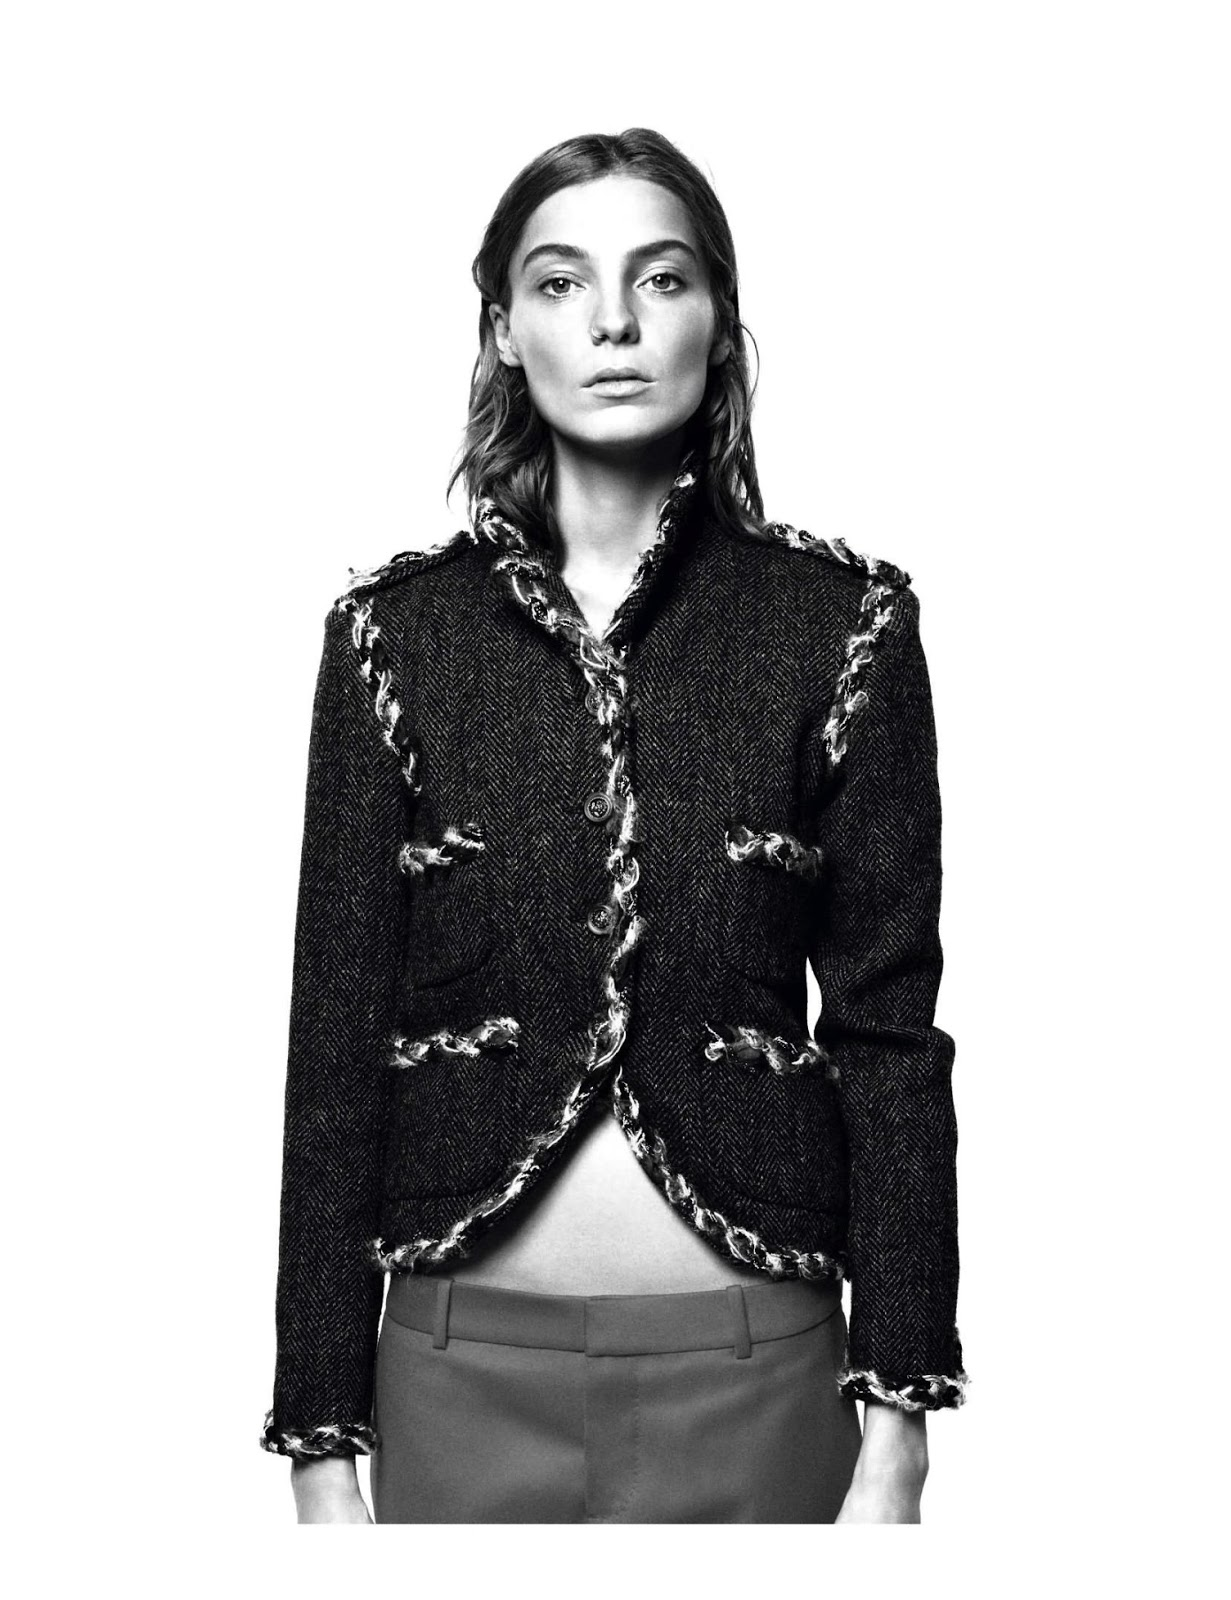 Daria Werbowy Shines On Fashion Canada S October 2013: Daria Werbowy By David Sims For Vogue Paris August 2013